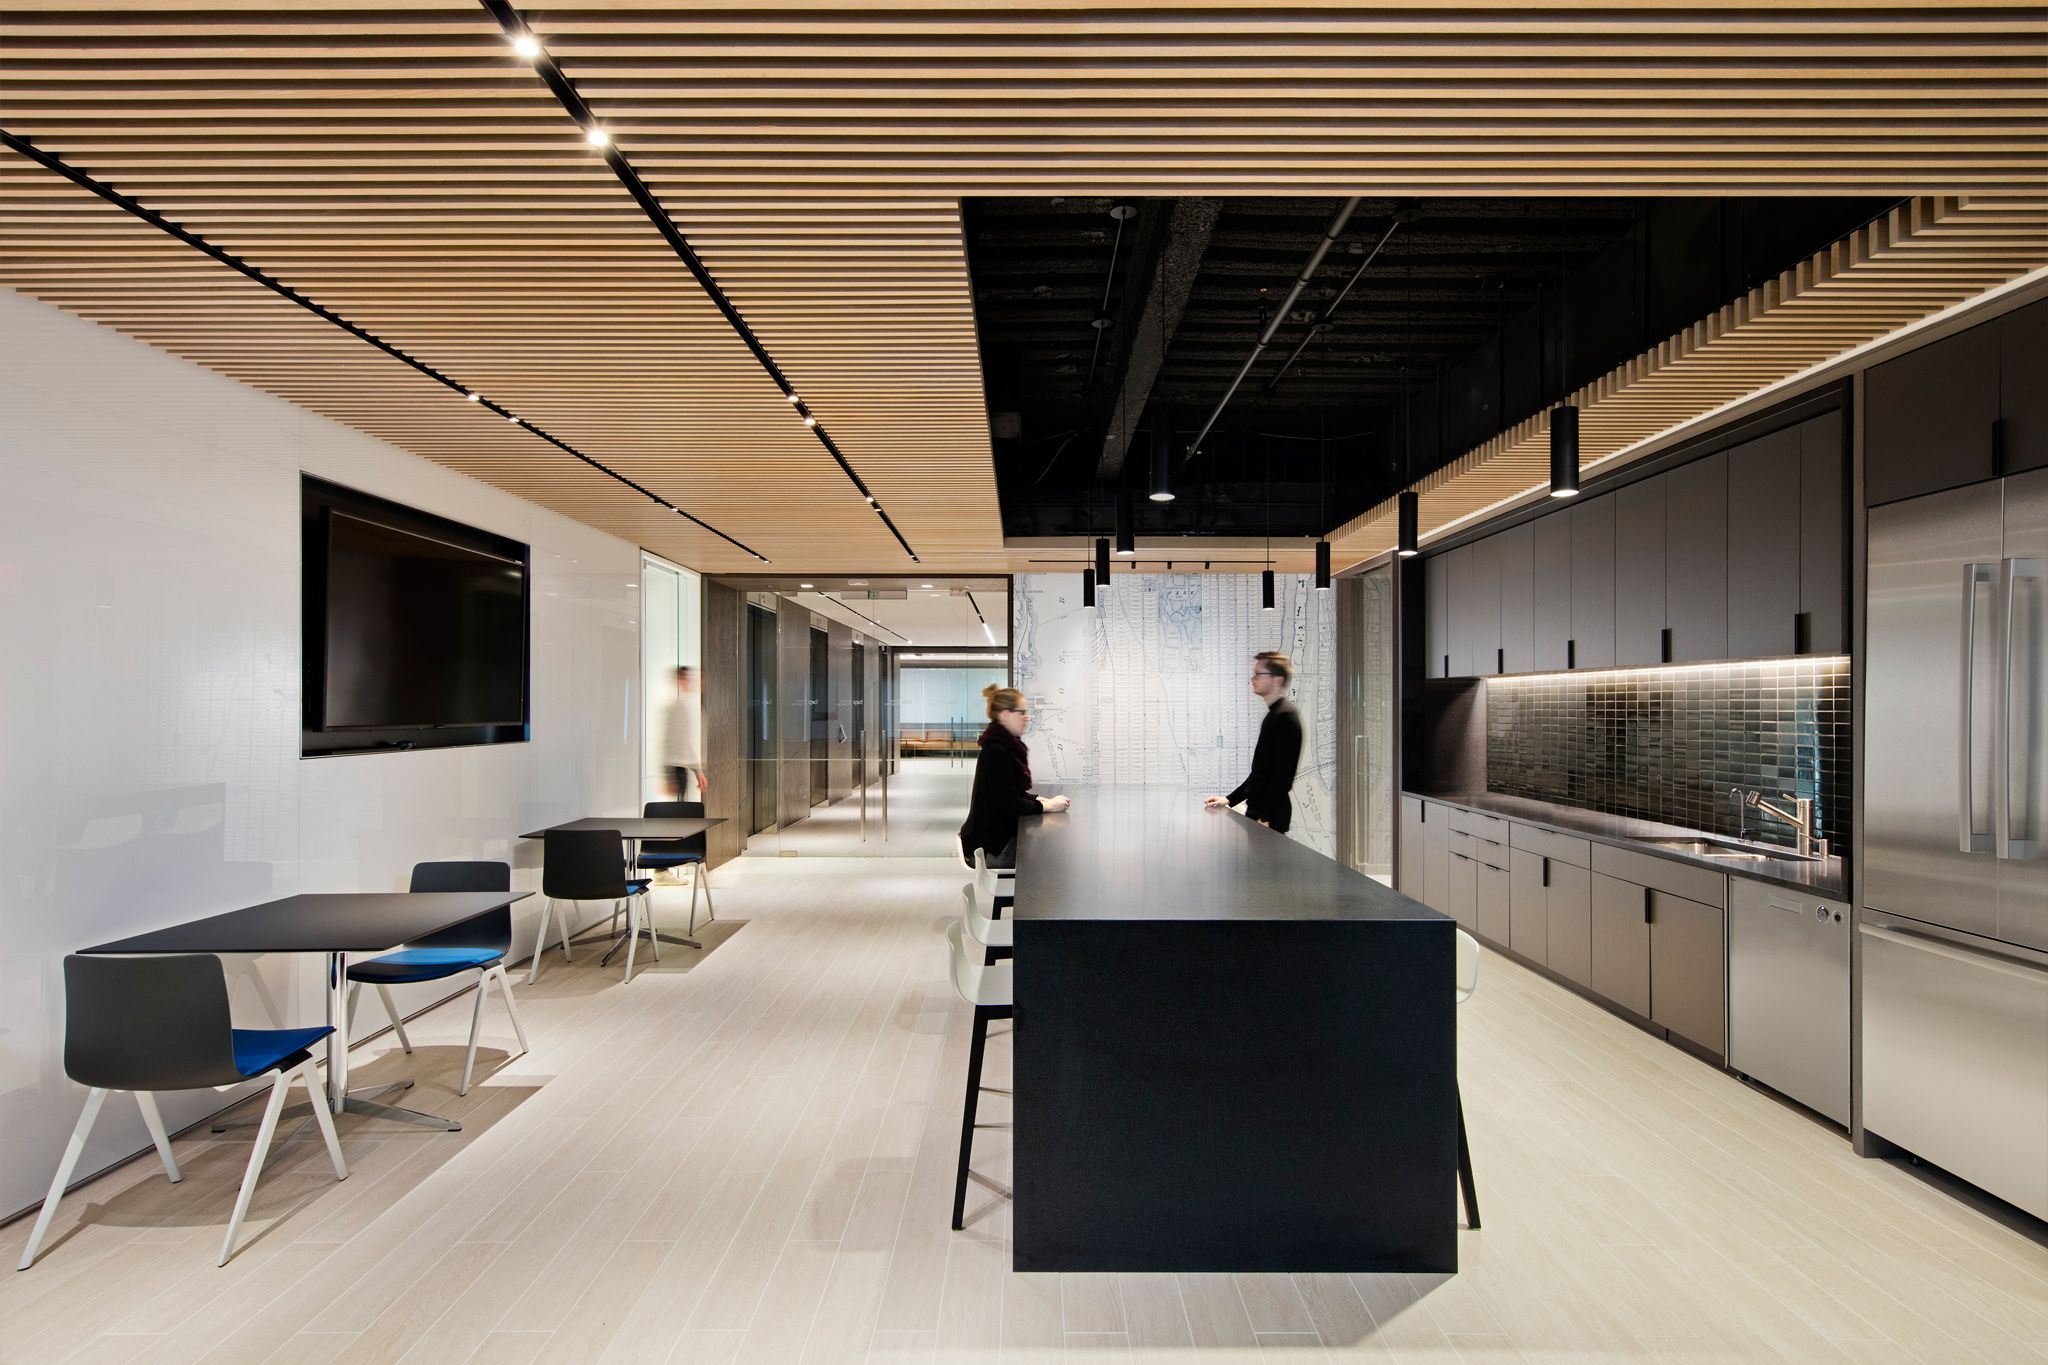 Fogarty Finger » Boston Properties Office | office | Pinterest